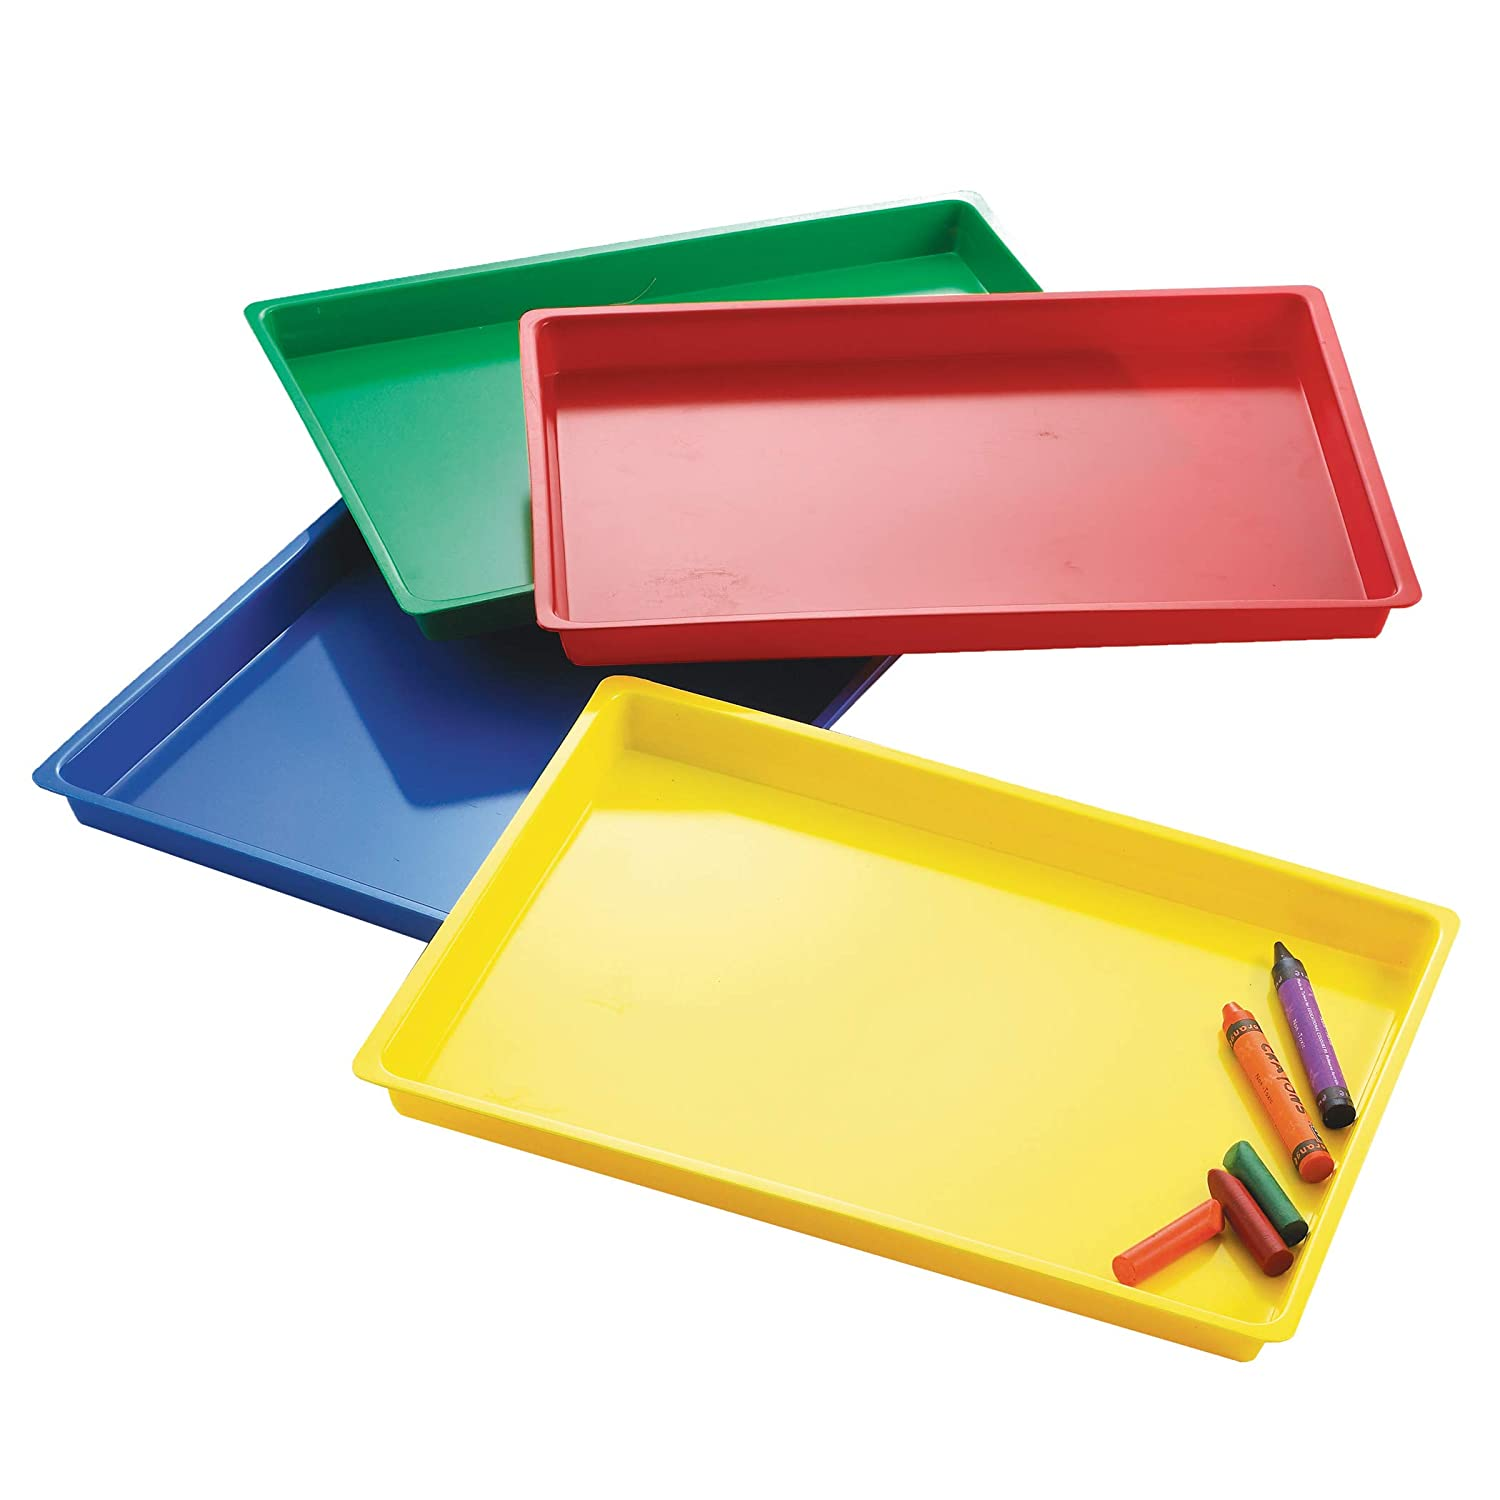 Learning Advantage Multipurpose Trays, Set of 4 Assorted Colors